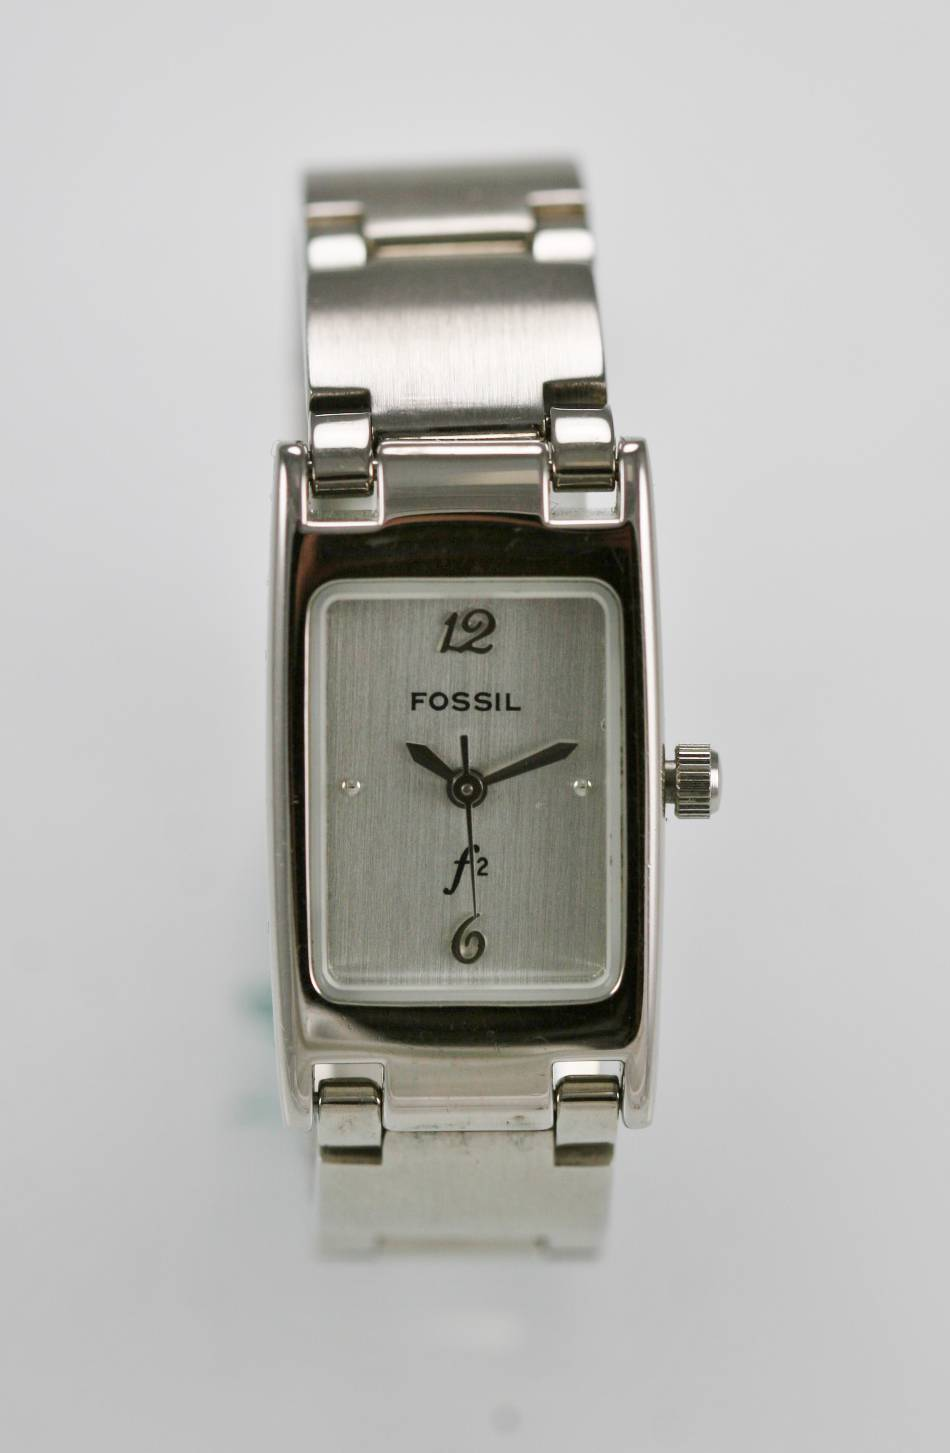 64a51feab01 Fossil F2 Watch Womens Stainless Steel Silver Water Resist White Battery  Quartz